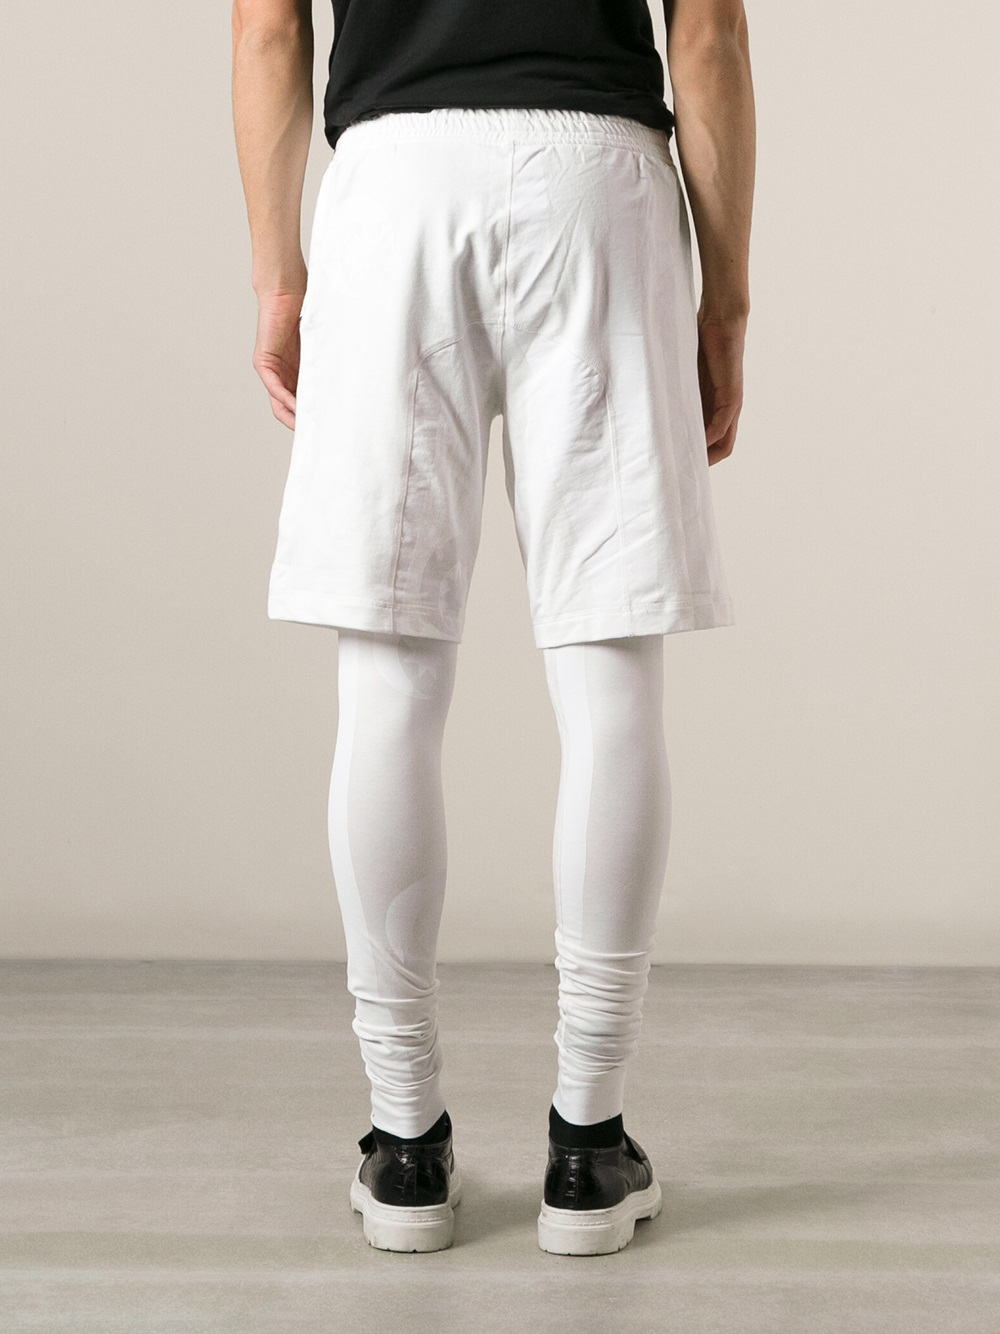 White Leggings For Men - The Else